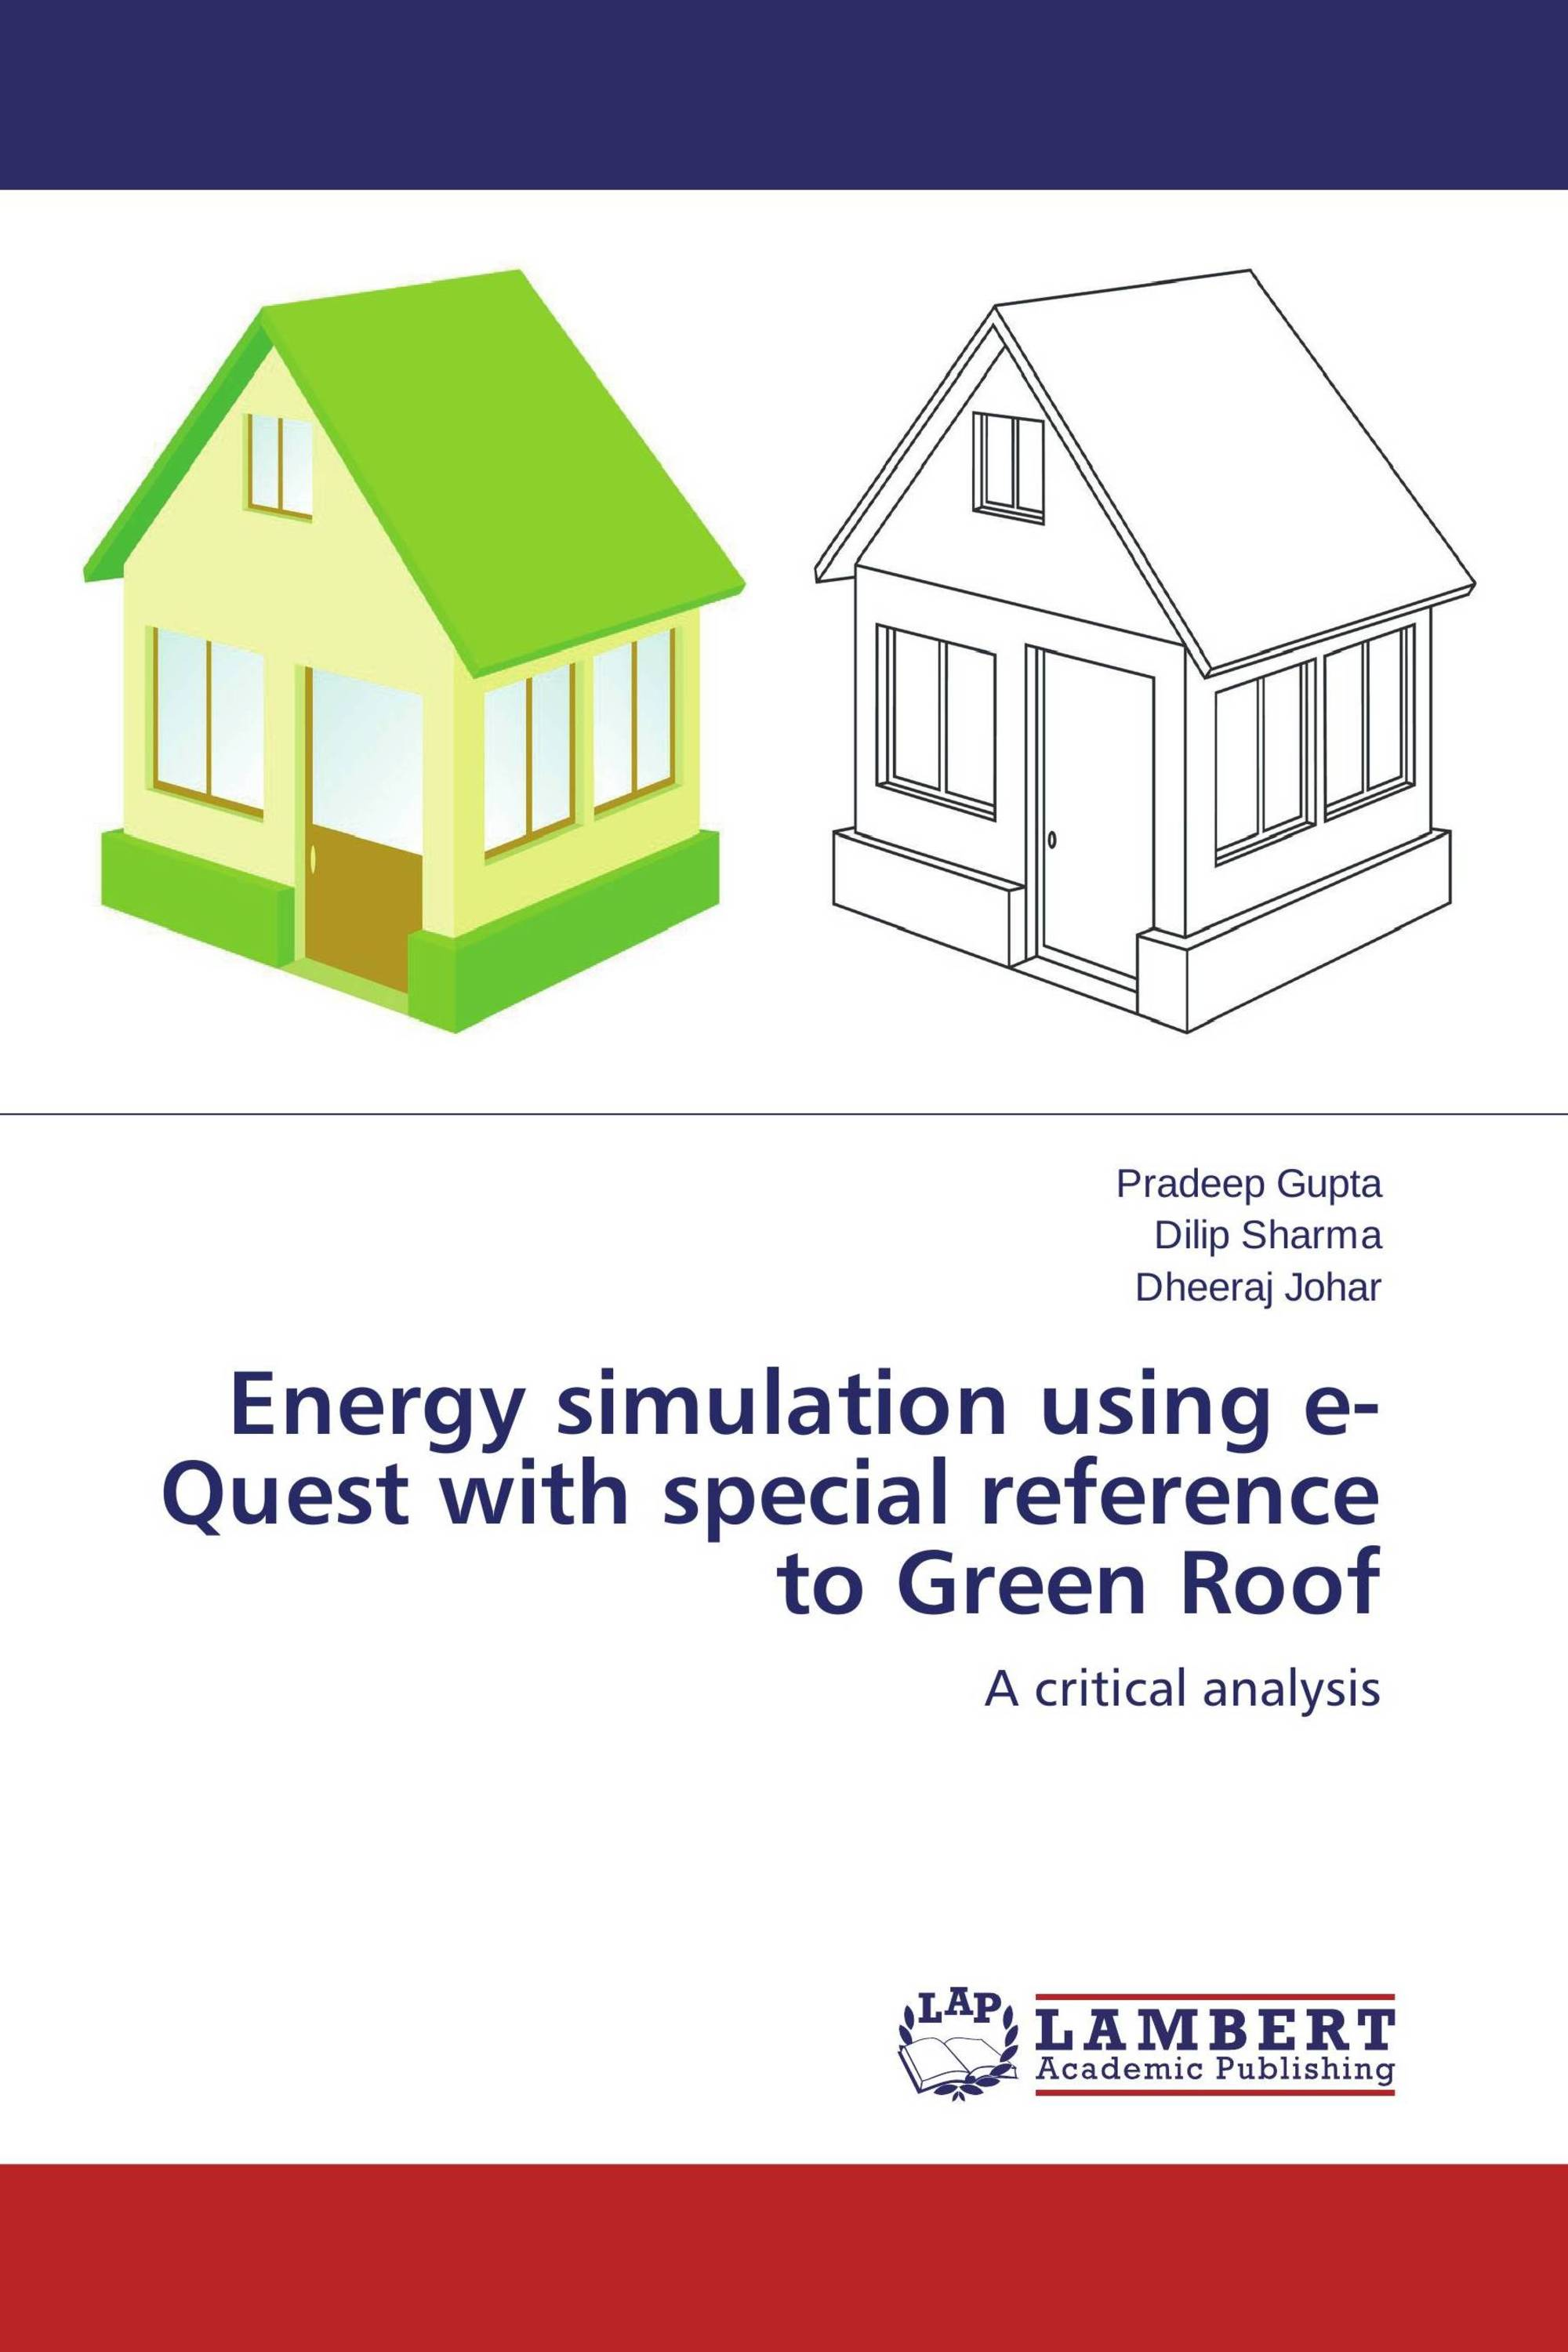 Energy simulation using e-Quest with special reference to Green Roof